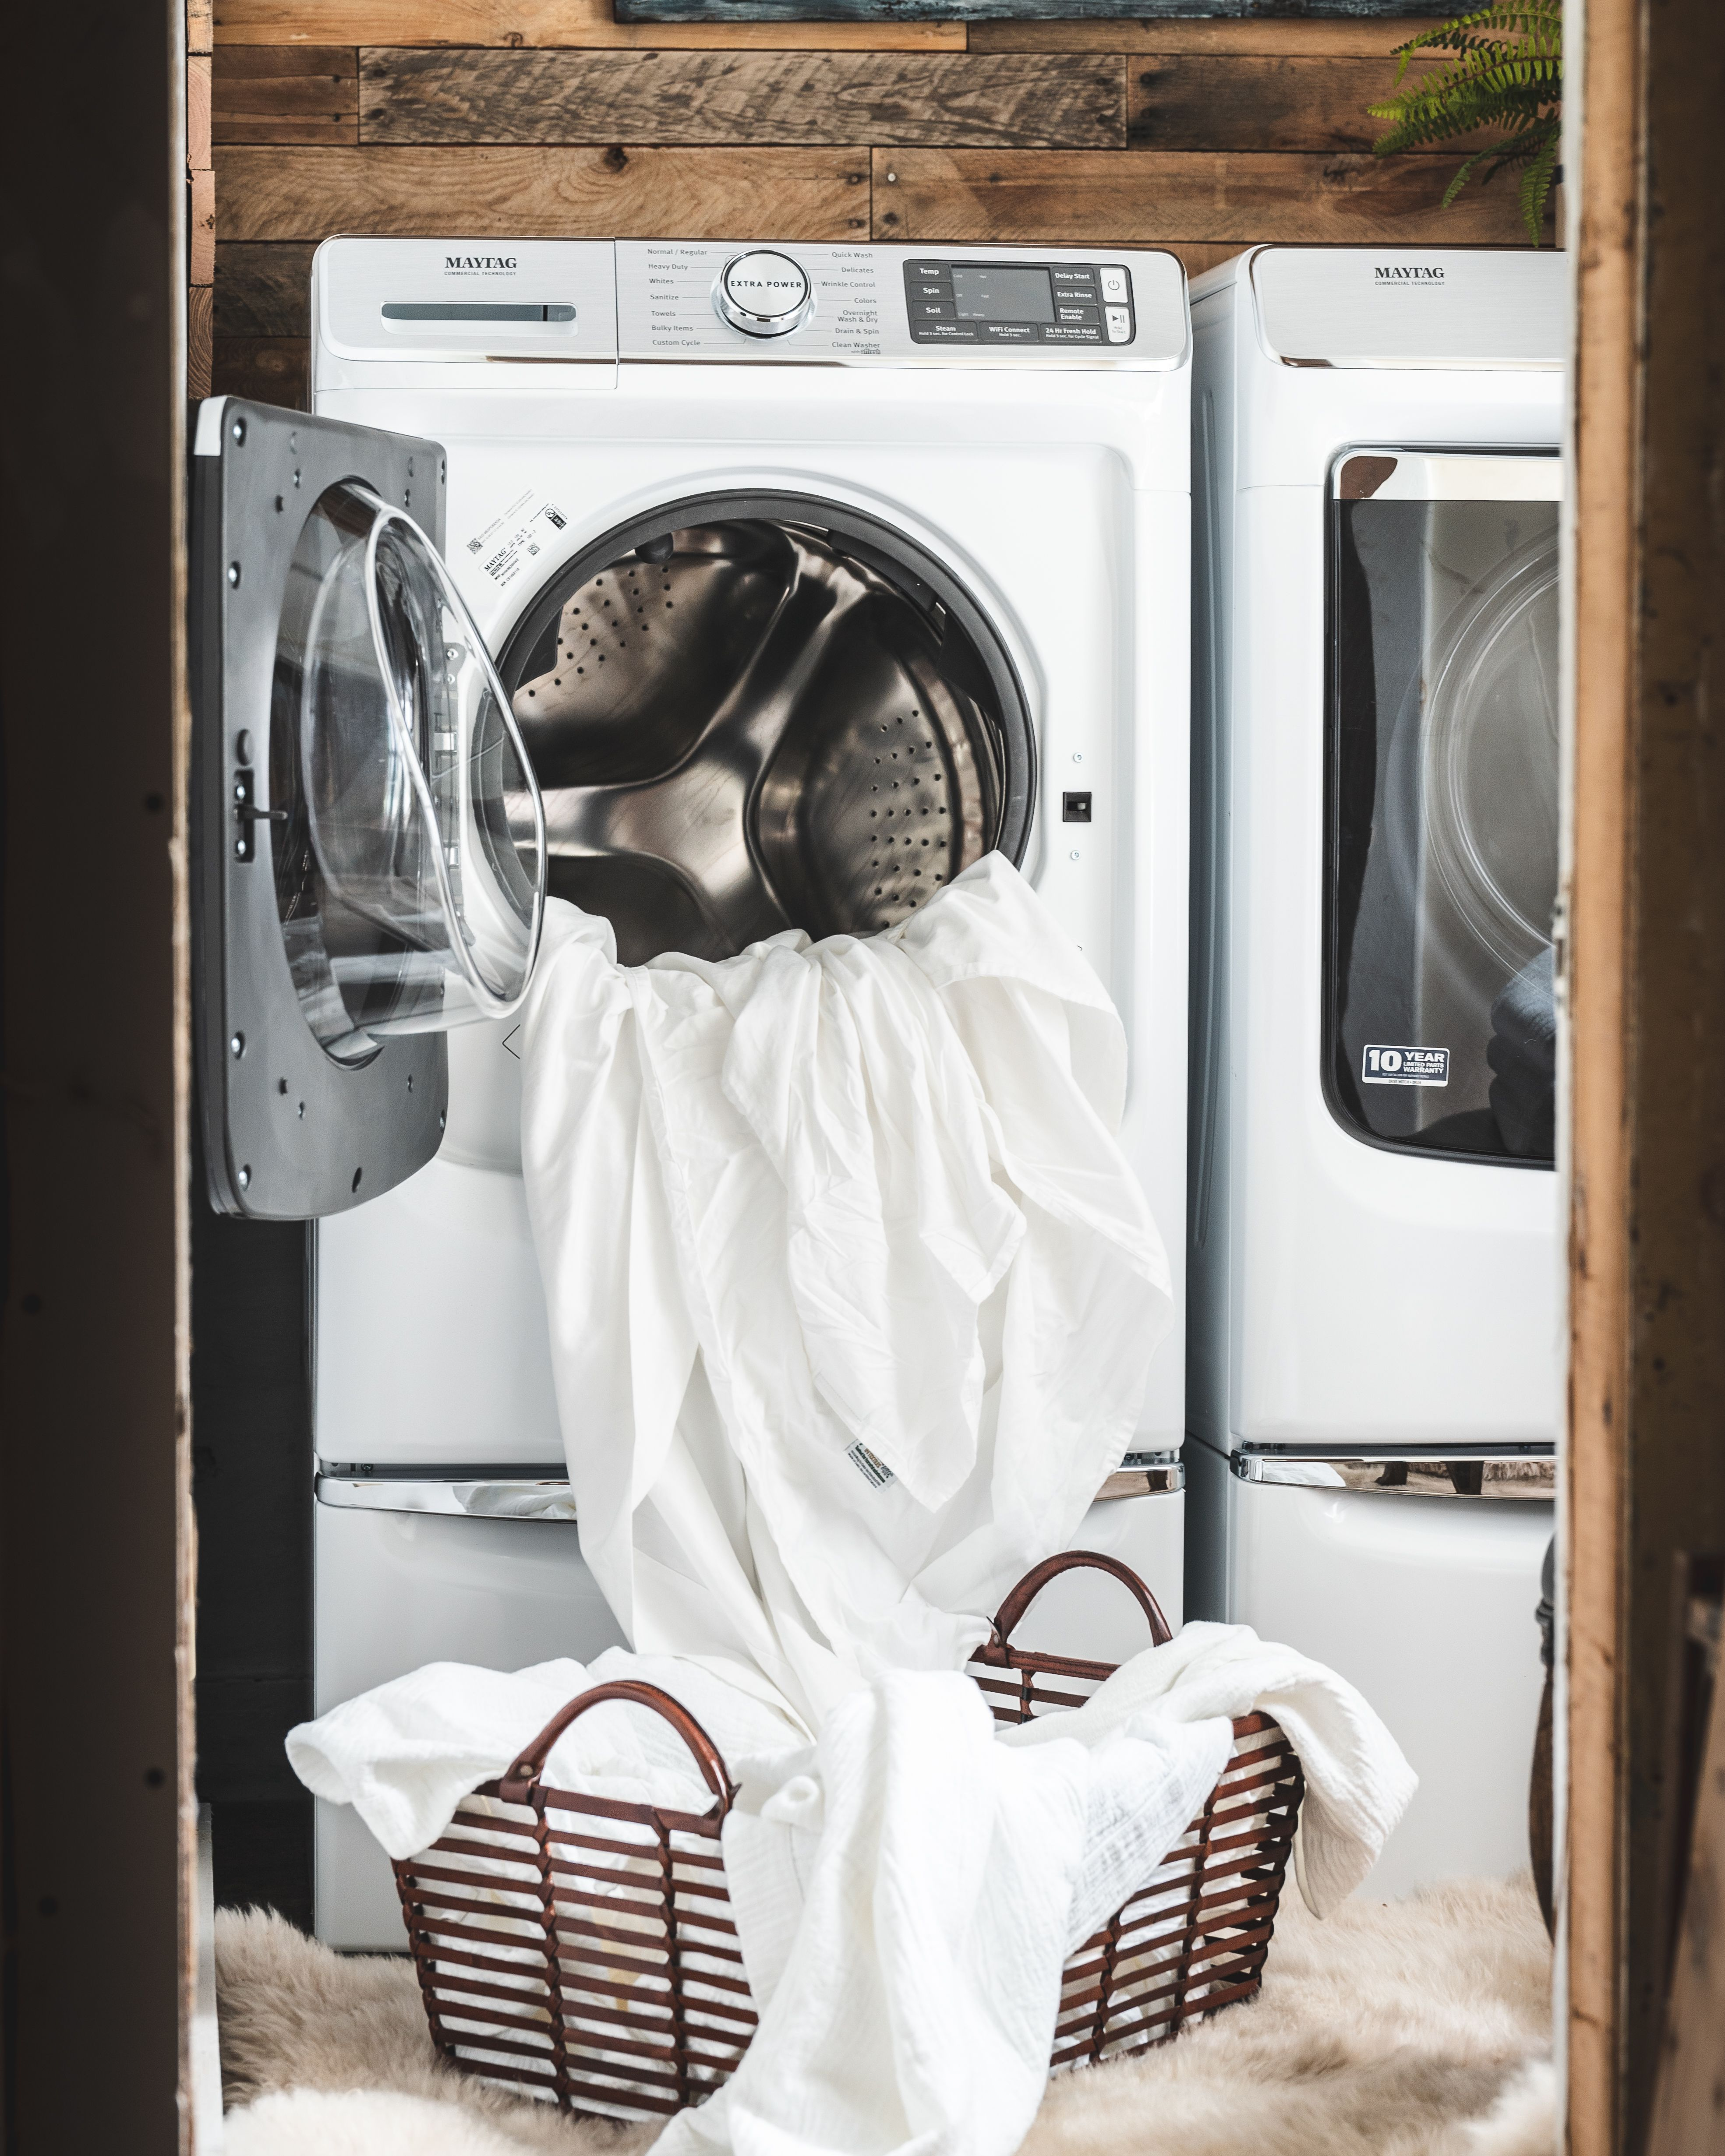 Maytag Laundry Room Maytag Laundry Cleaning Clothes Laundry